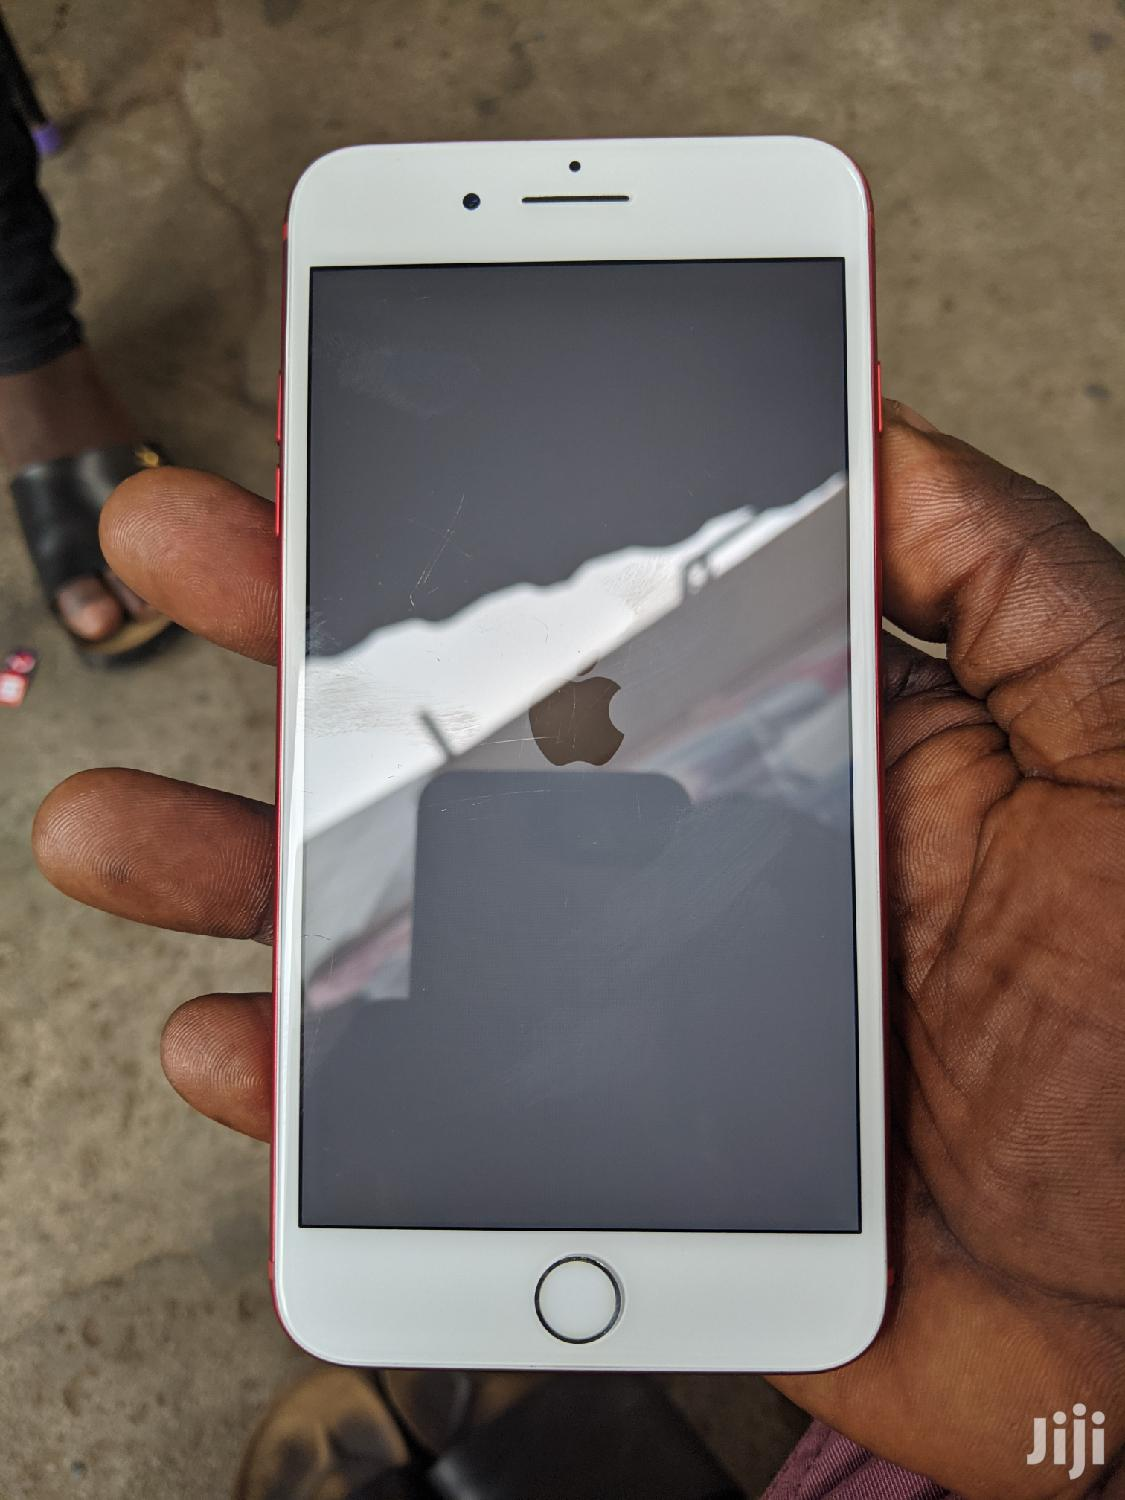 Apple iPhone 7 Plus 32 GB Silver | Mobile Phones for sale in Accra Metropolitan, Greater Accra, Ghana